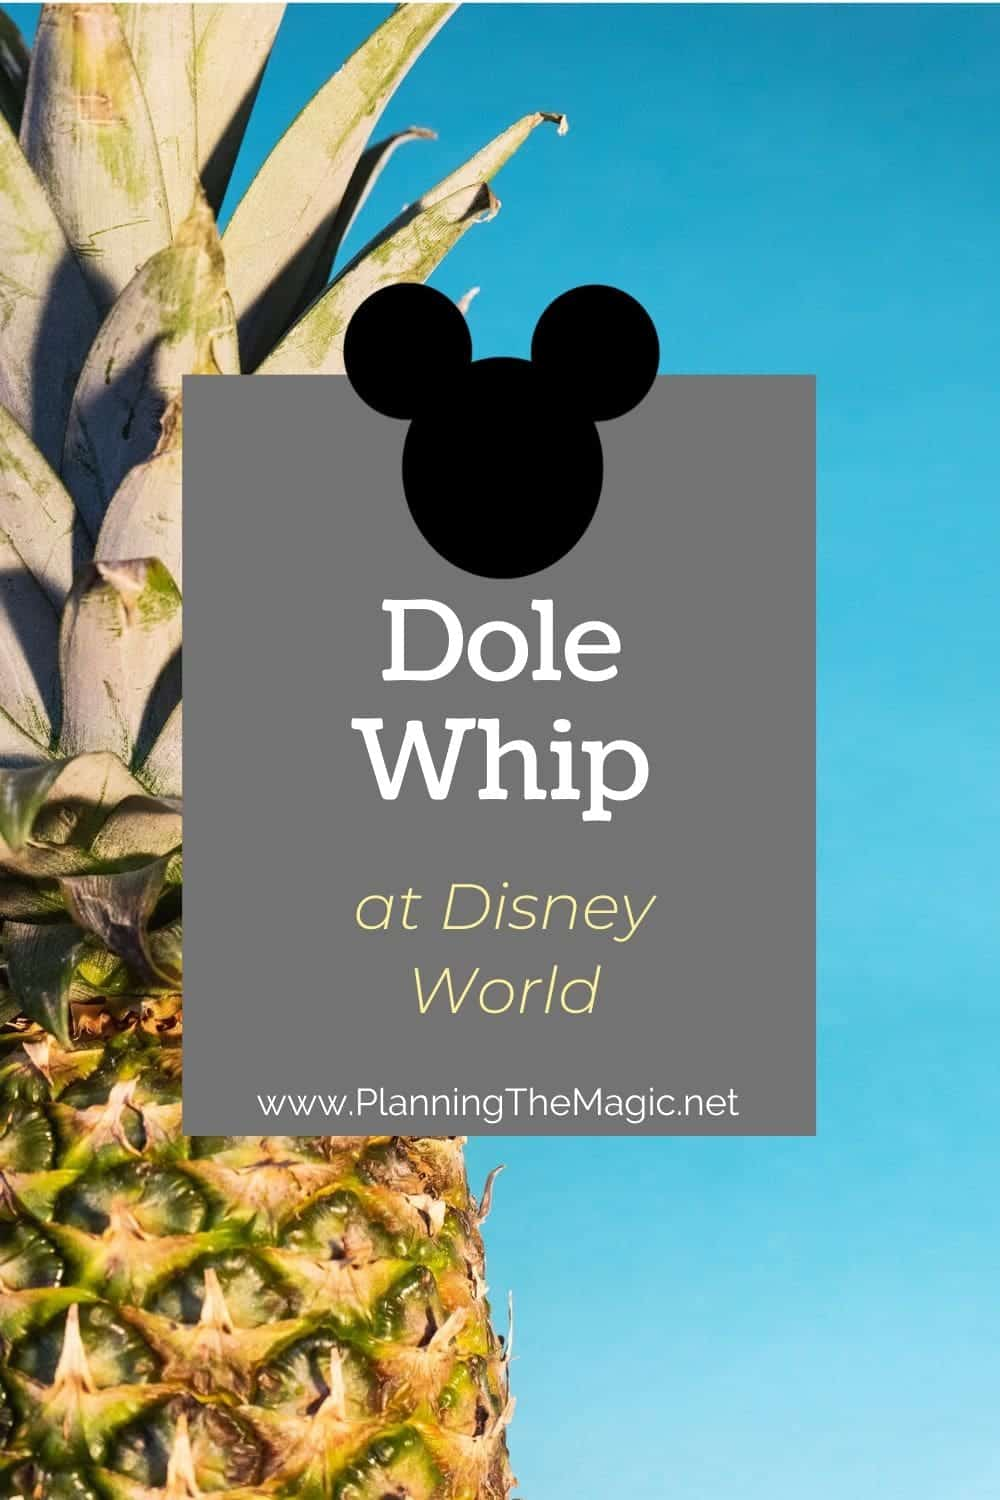 dole whip at disney